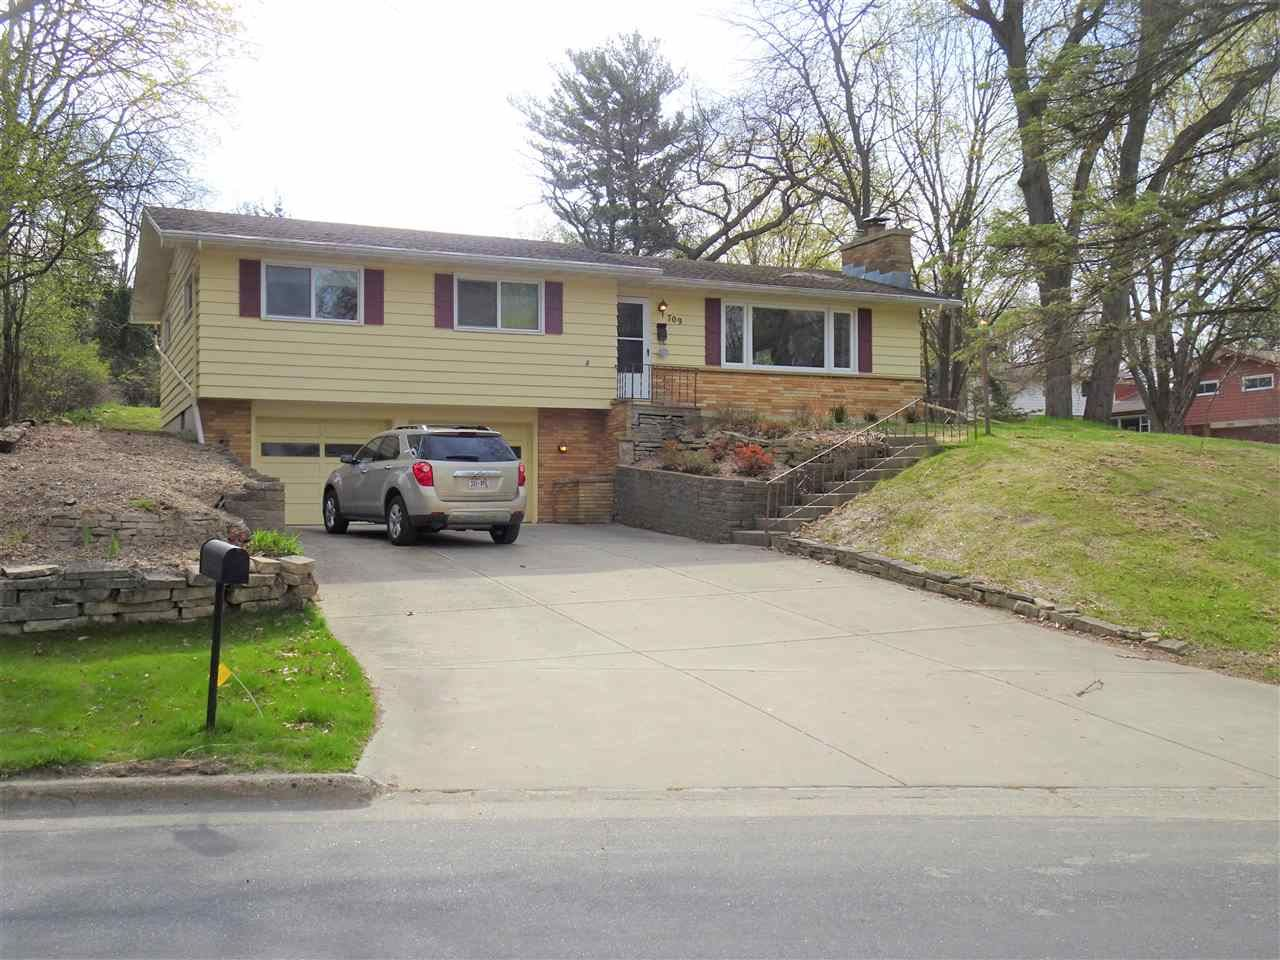 709 Dearholt Rd, Madison, WI 53711 - #: 1907300